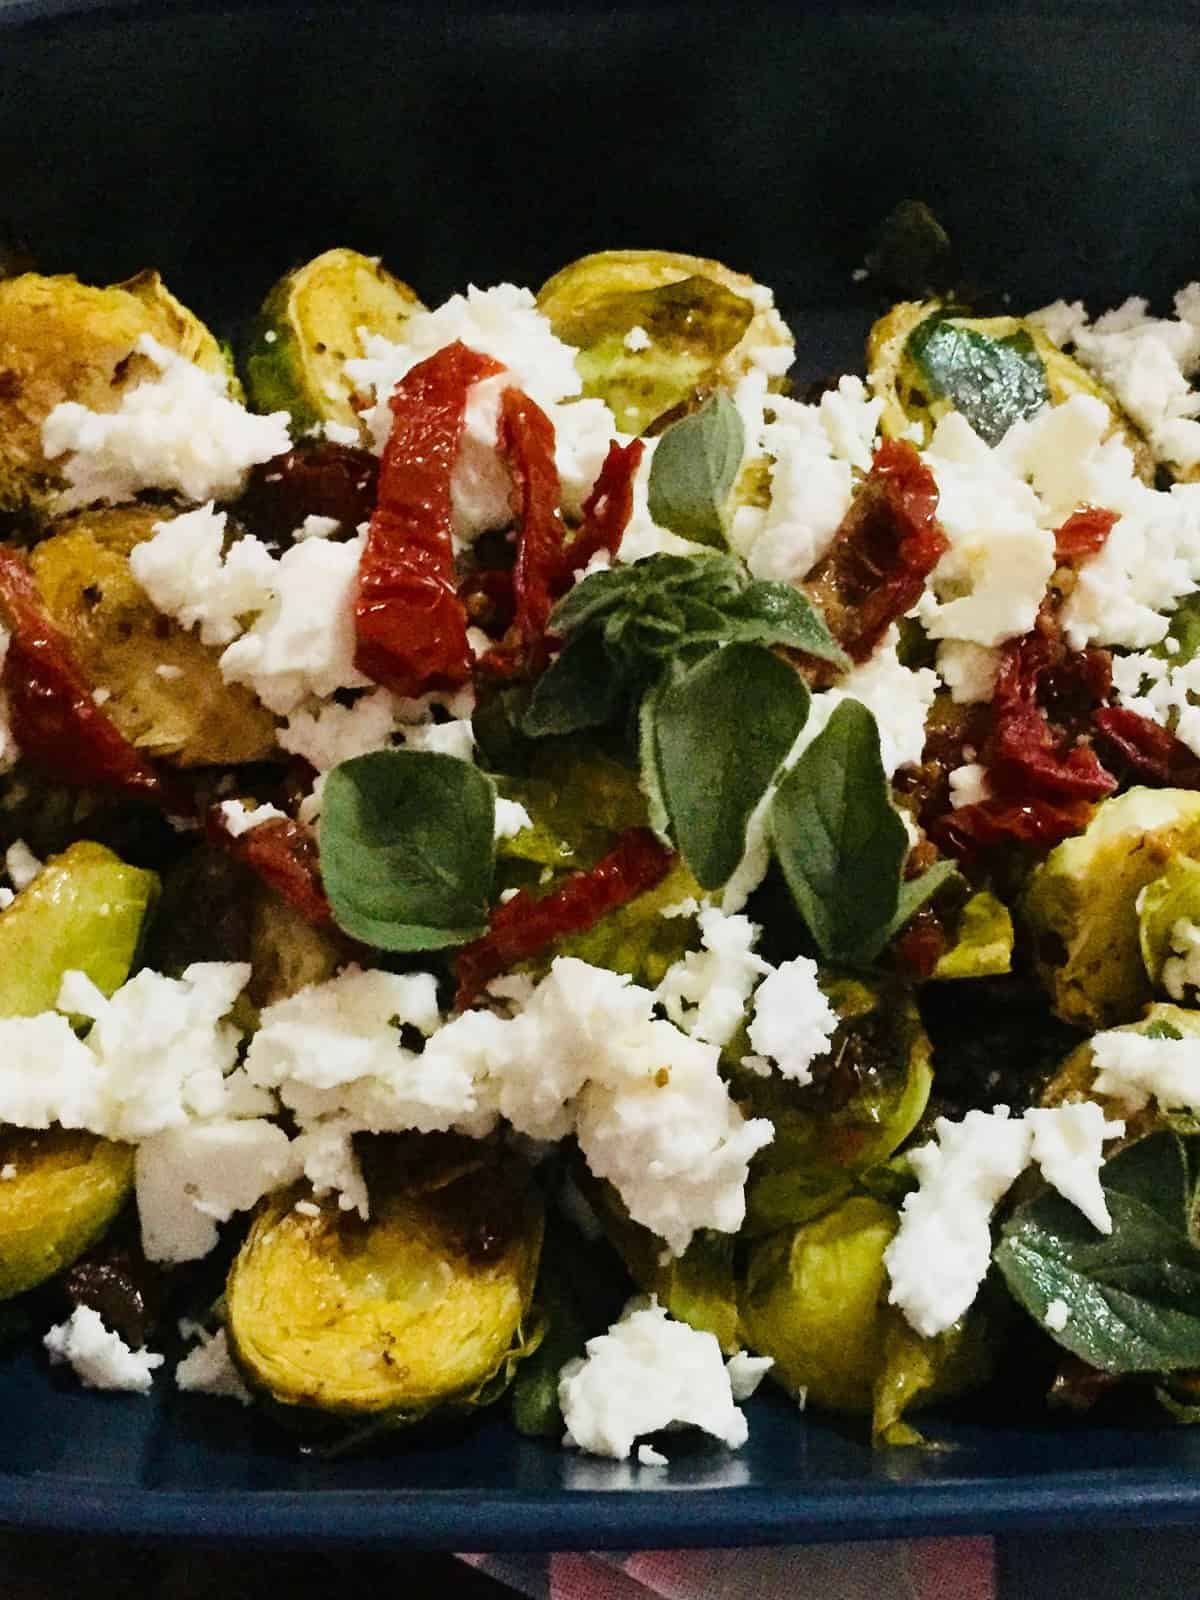 ROASTED BRUSSELS WITH OREGANO & SUN DRIED TOMATOES